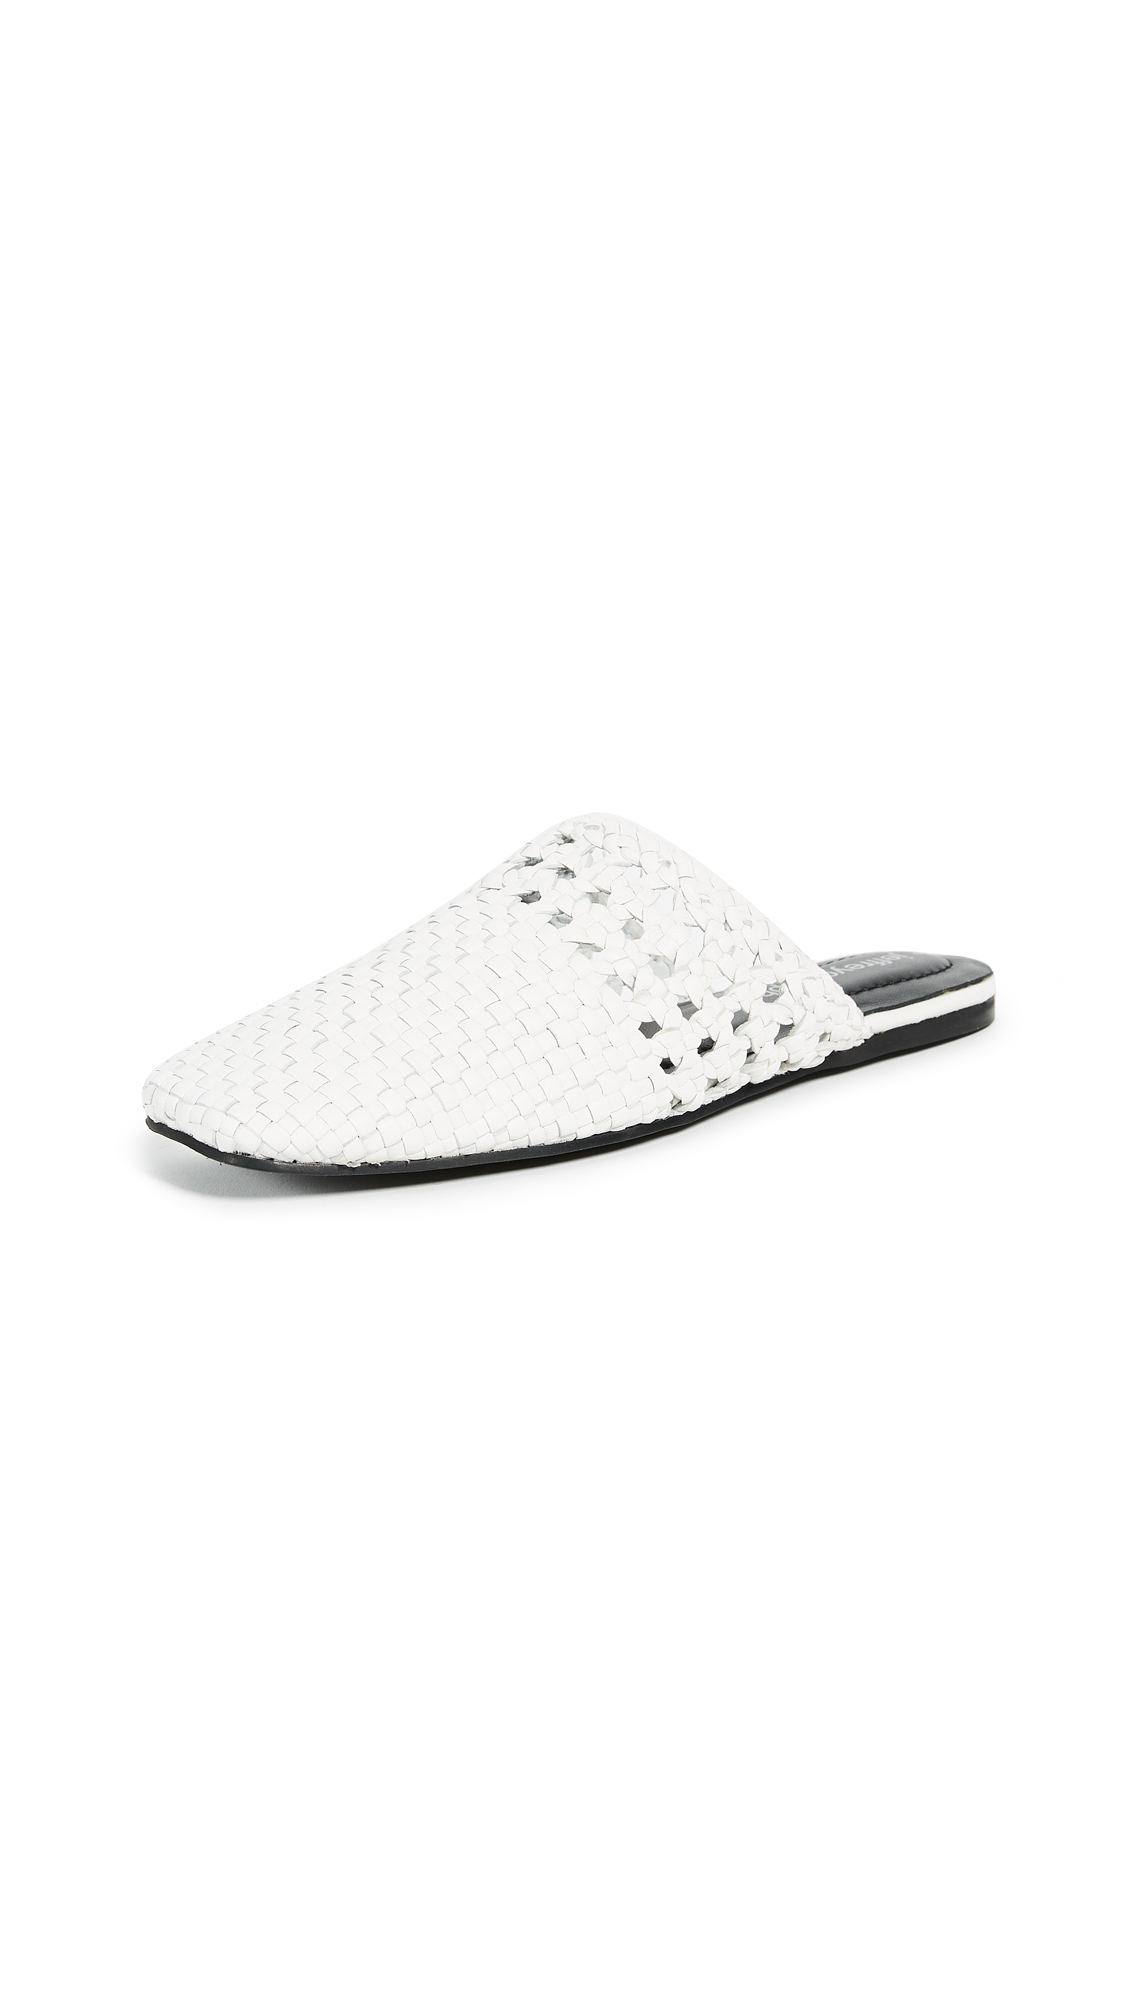 Jeffrey Campbell Vaal Woven Mules - White